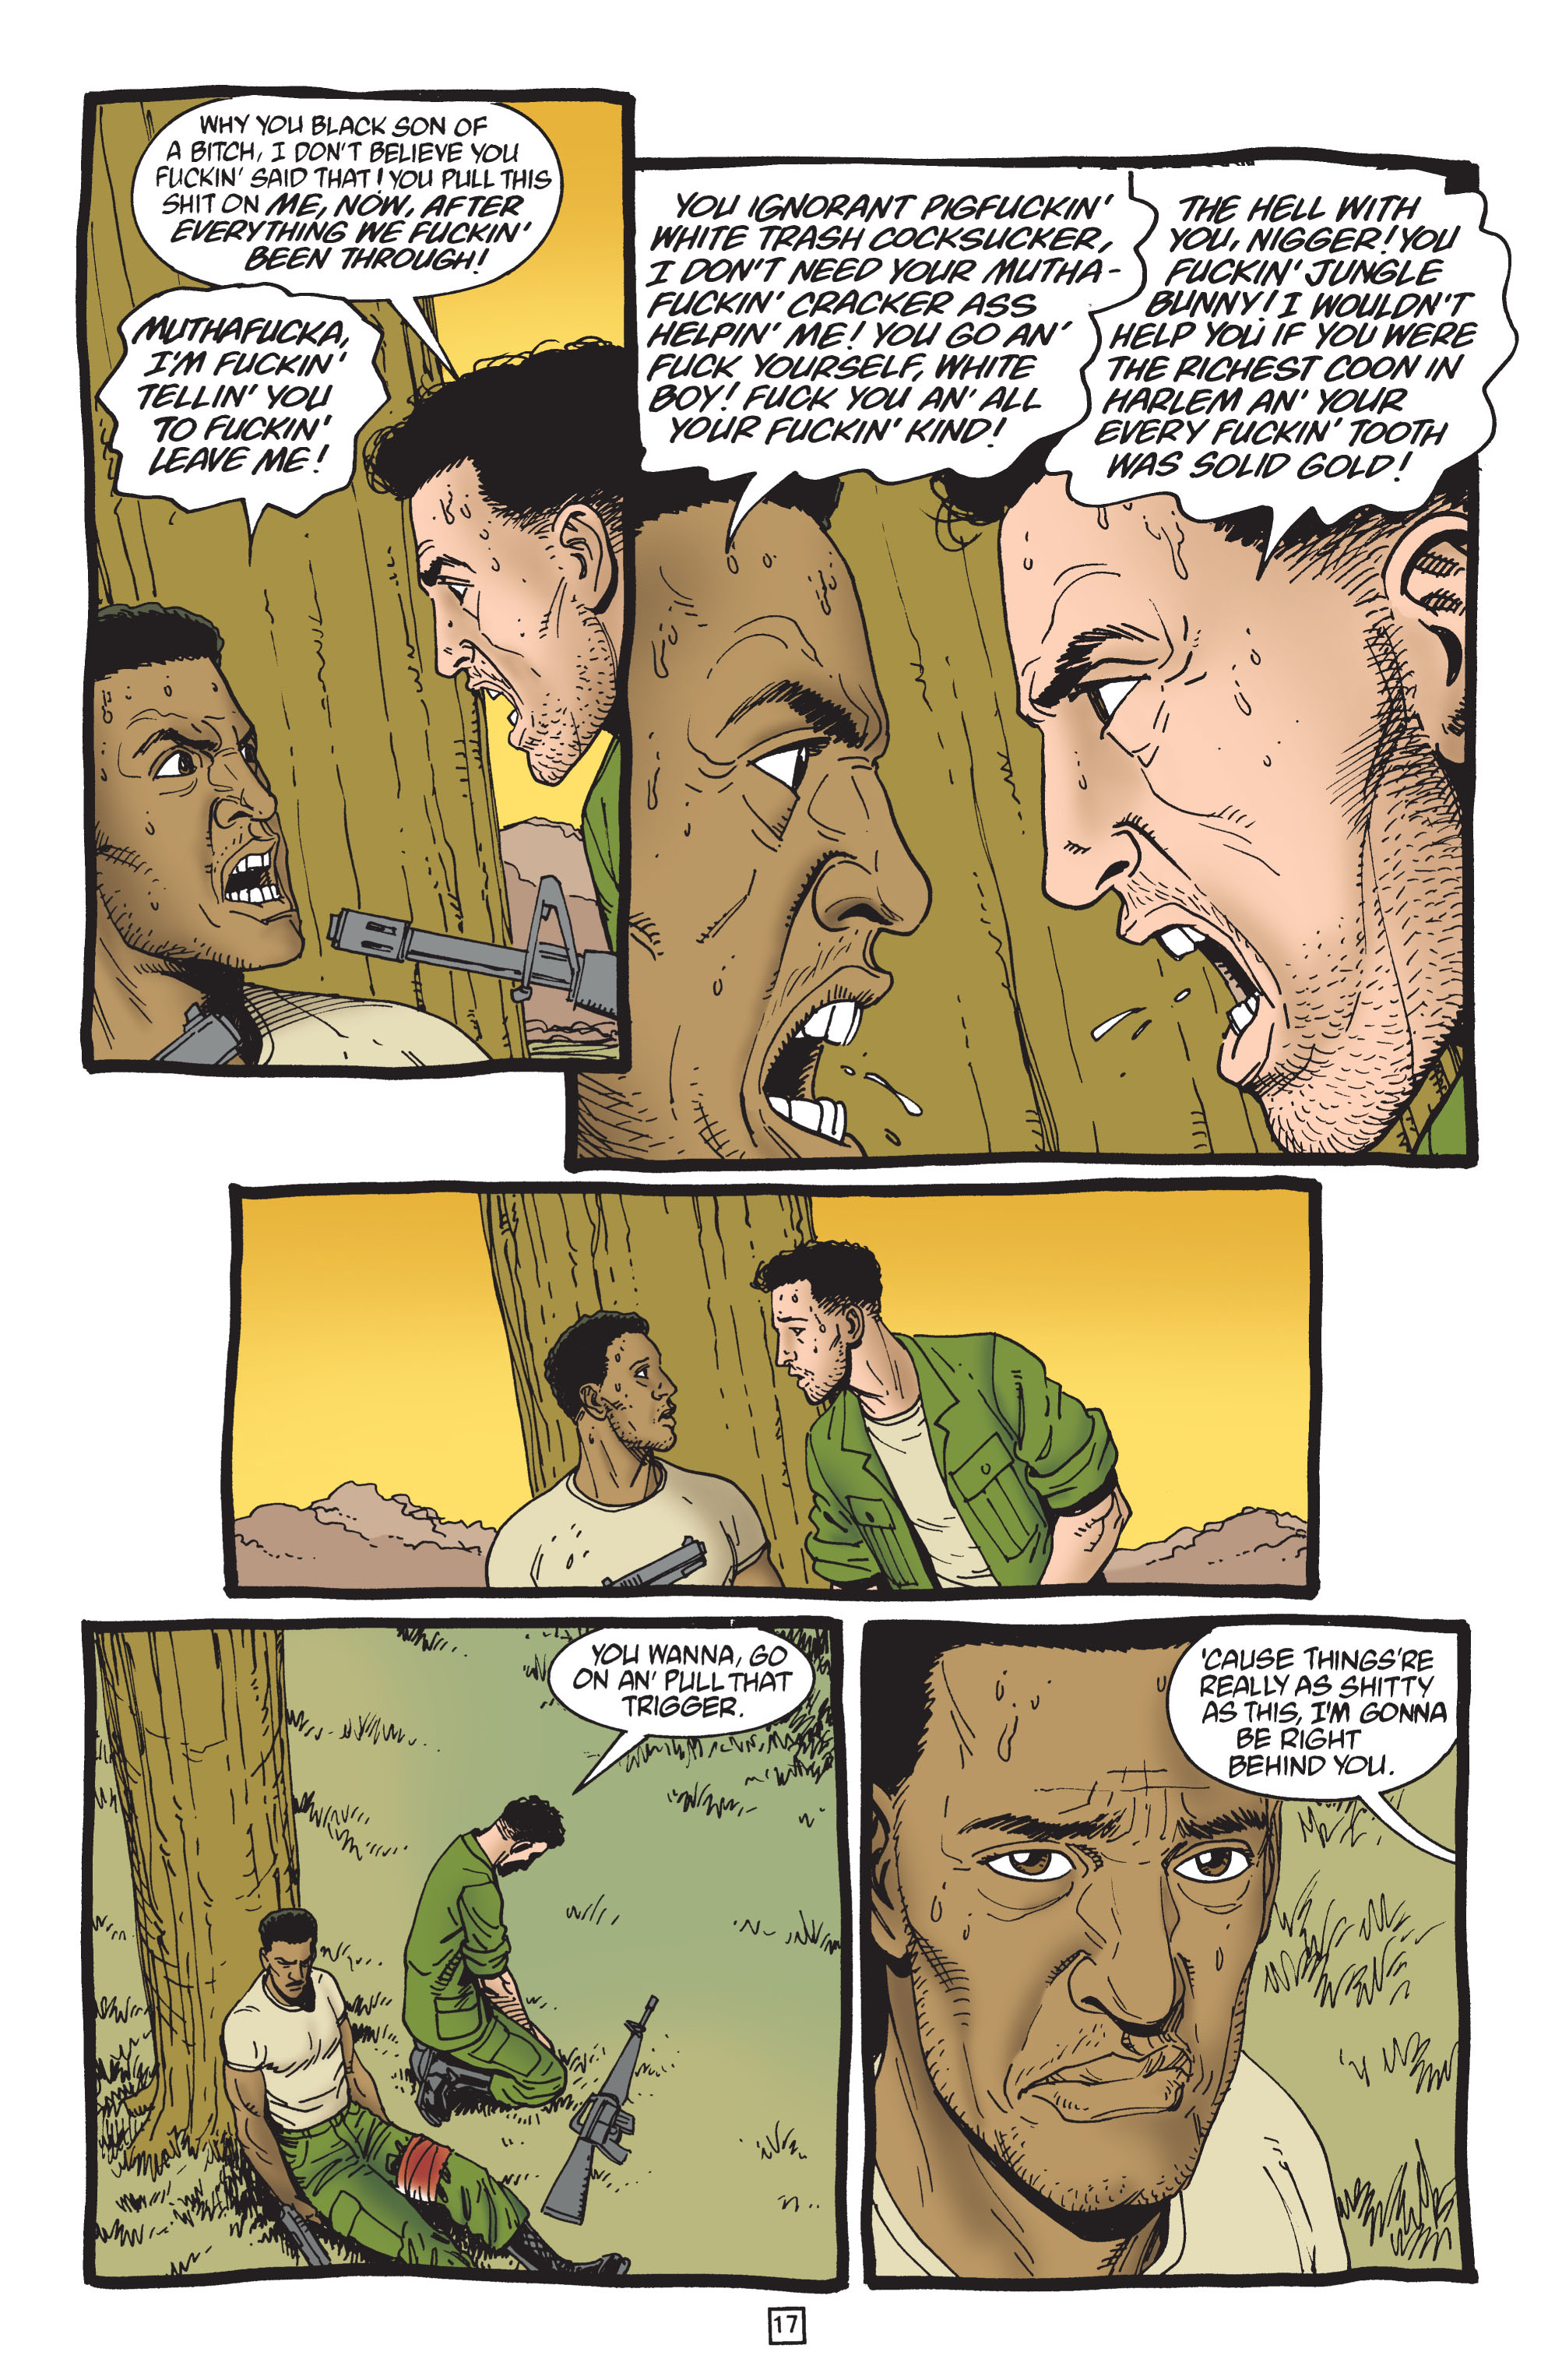 Preacher (1995) #50 pg.18, lettered by Clem Robins.